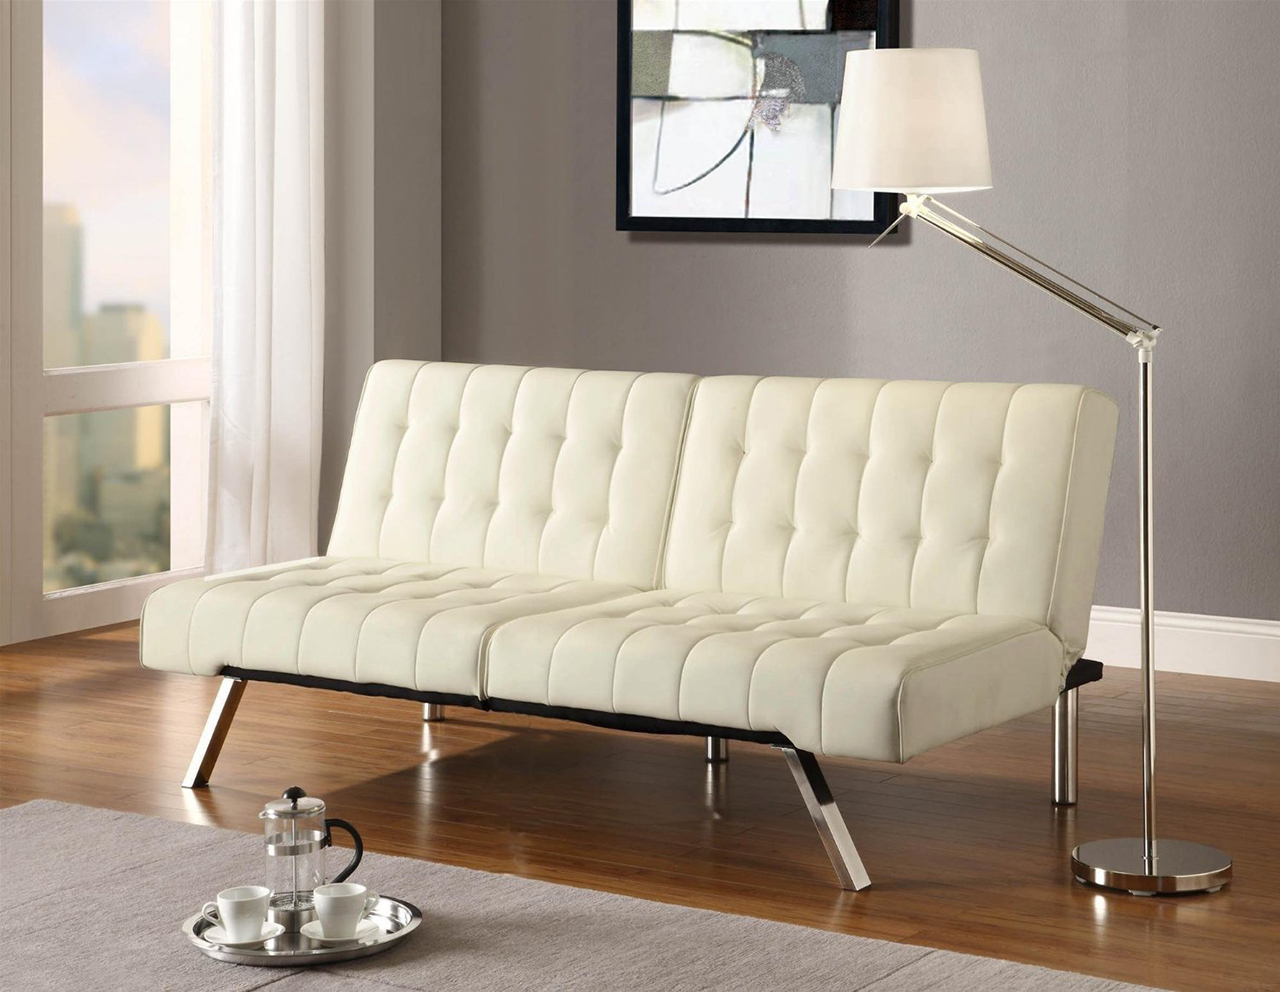 DHM Convertible Sofa in Vanilla